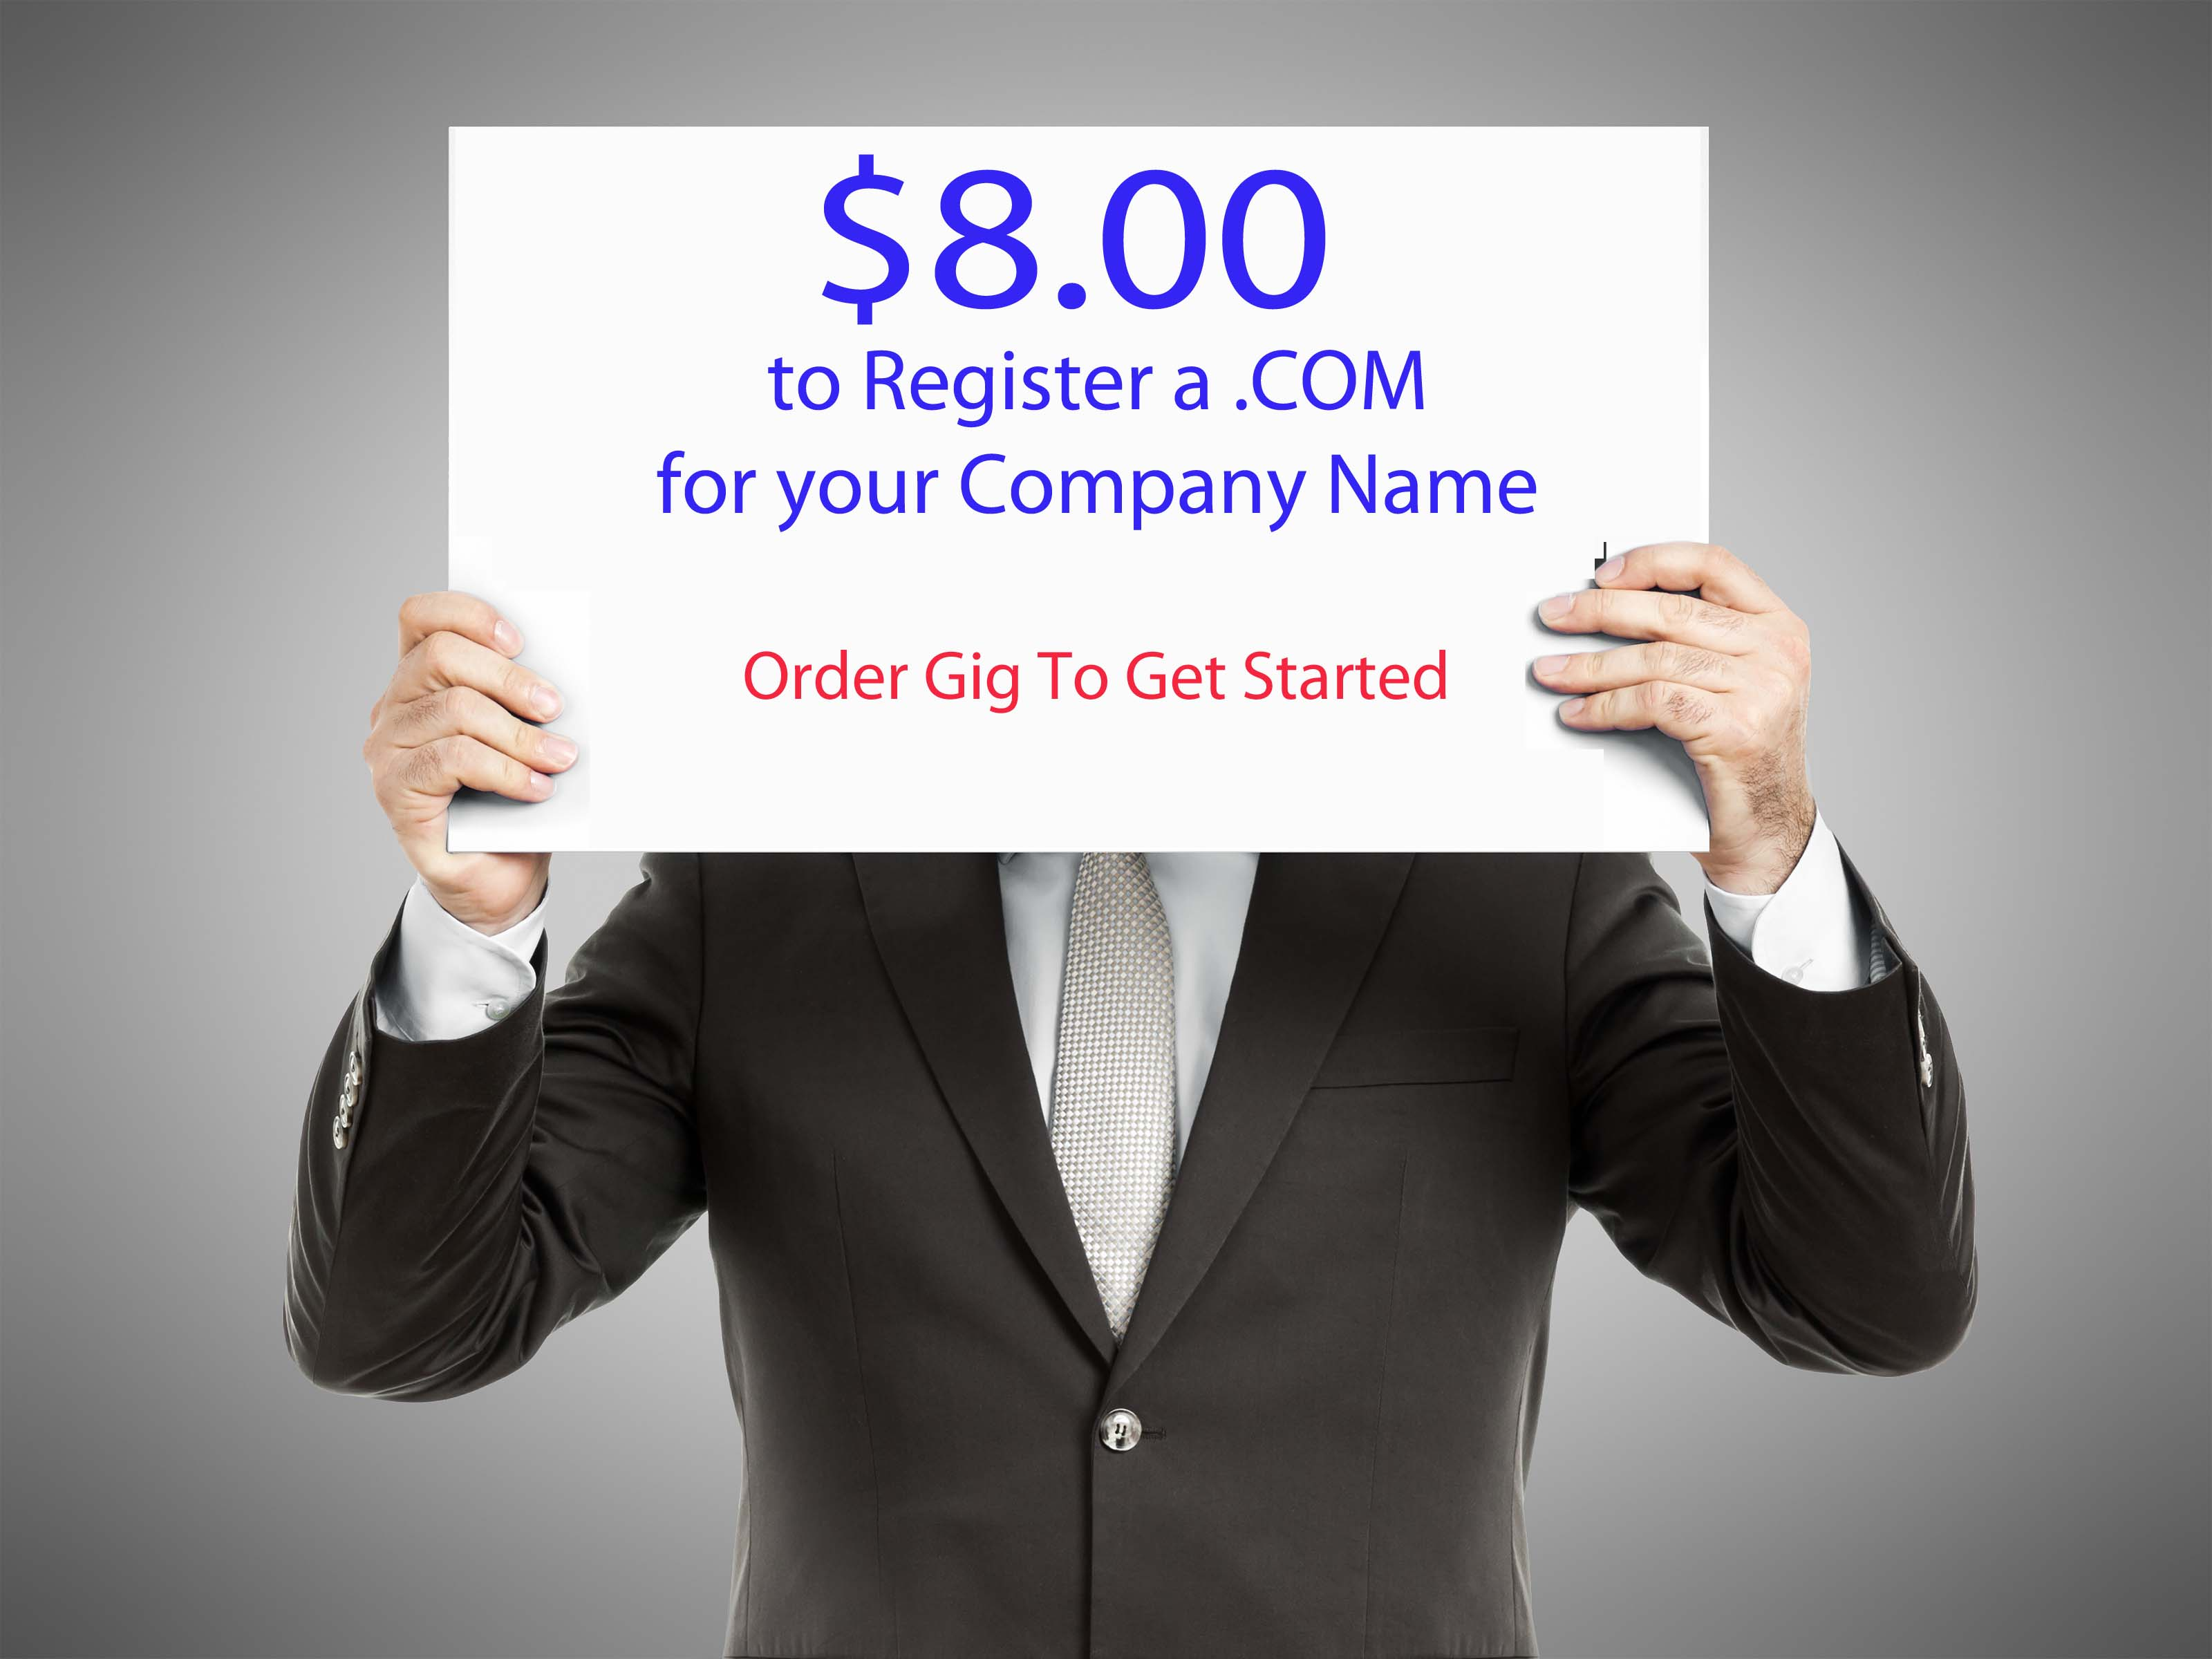 8.00. COM's - Register A. COM For Only